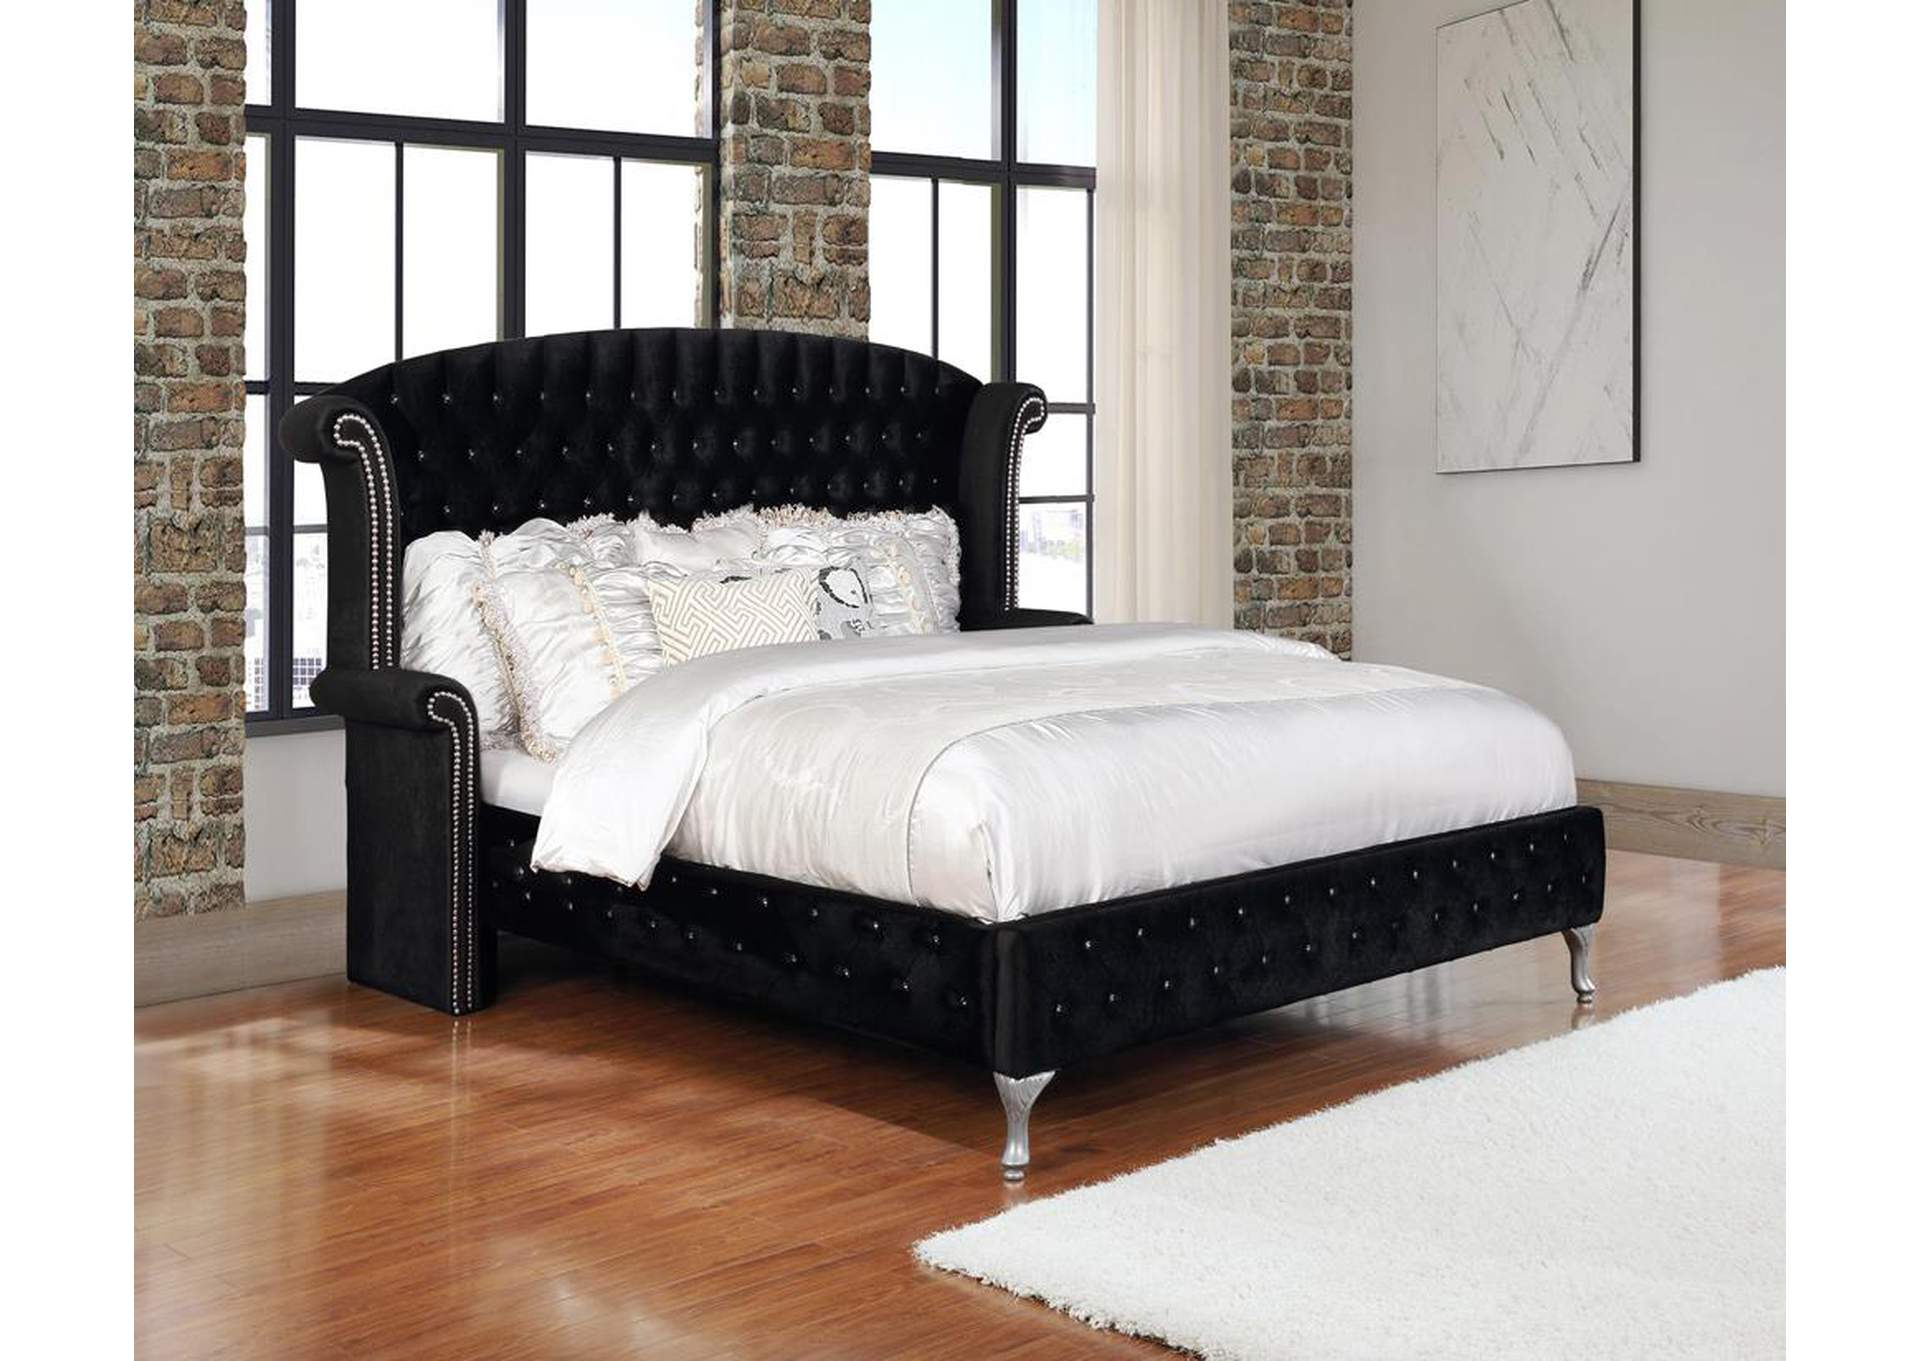 Cod Gray Deanna Contemporary California King Bed,Coaster Furniture